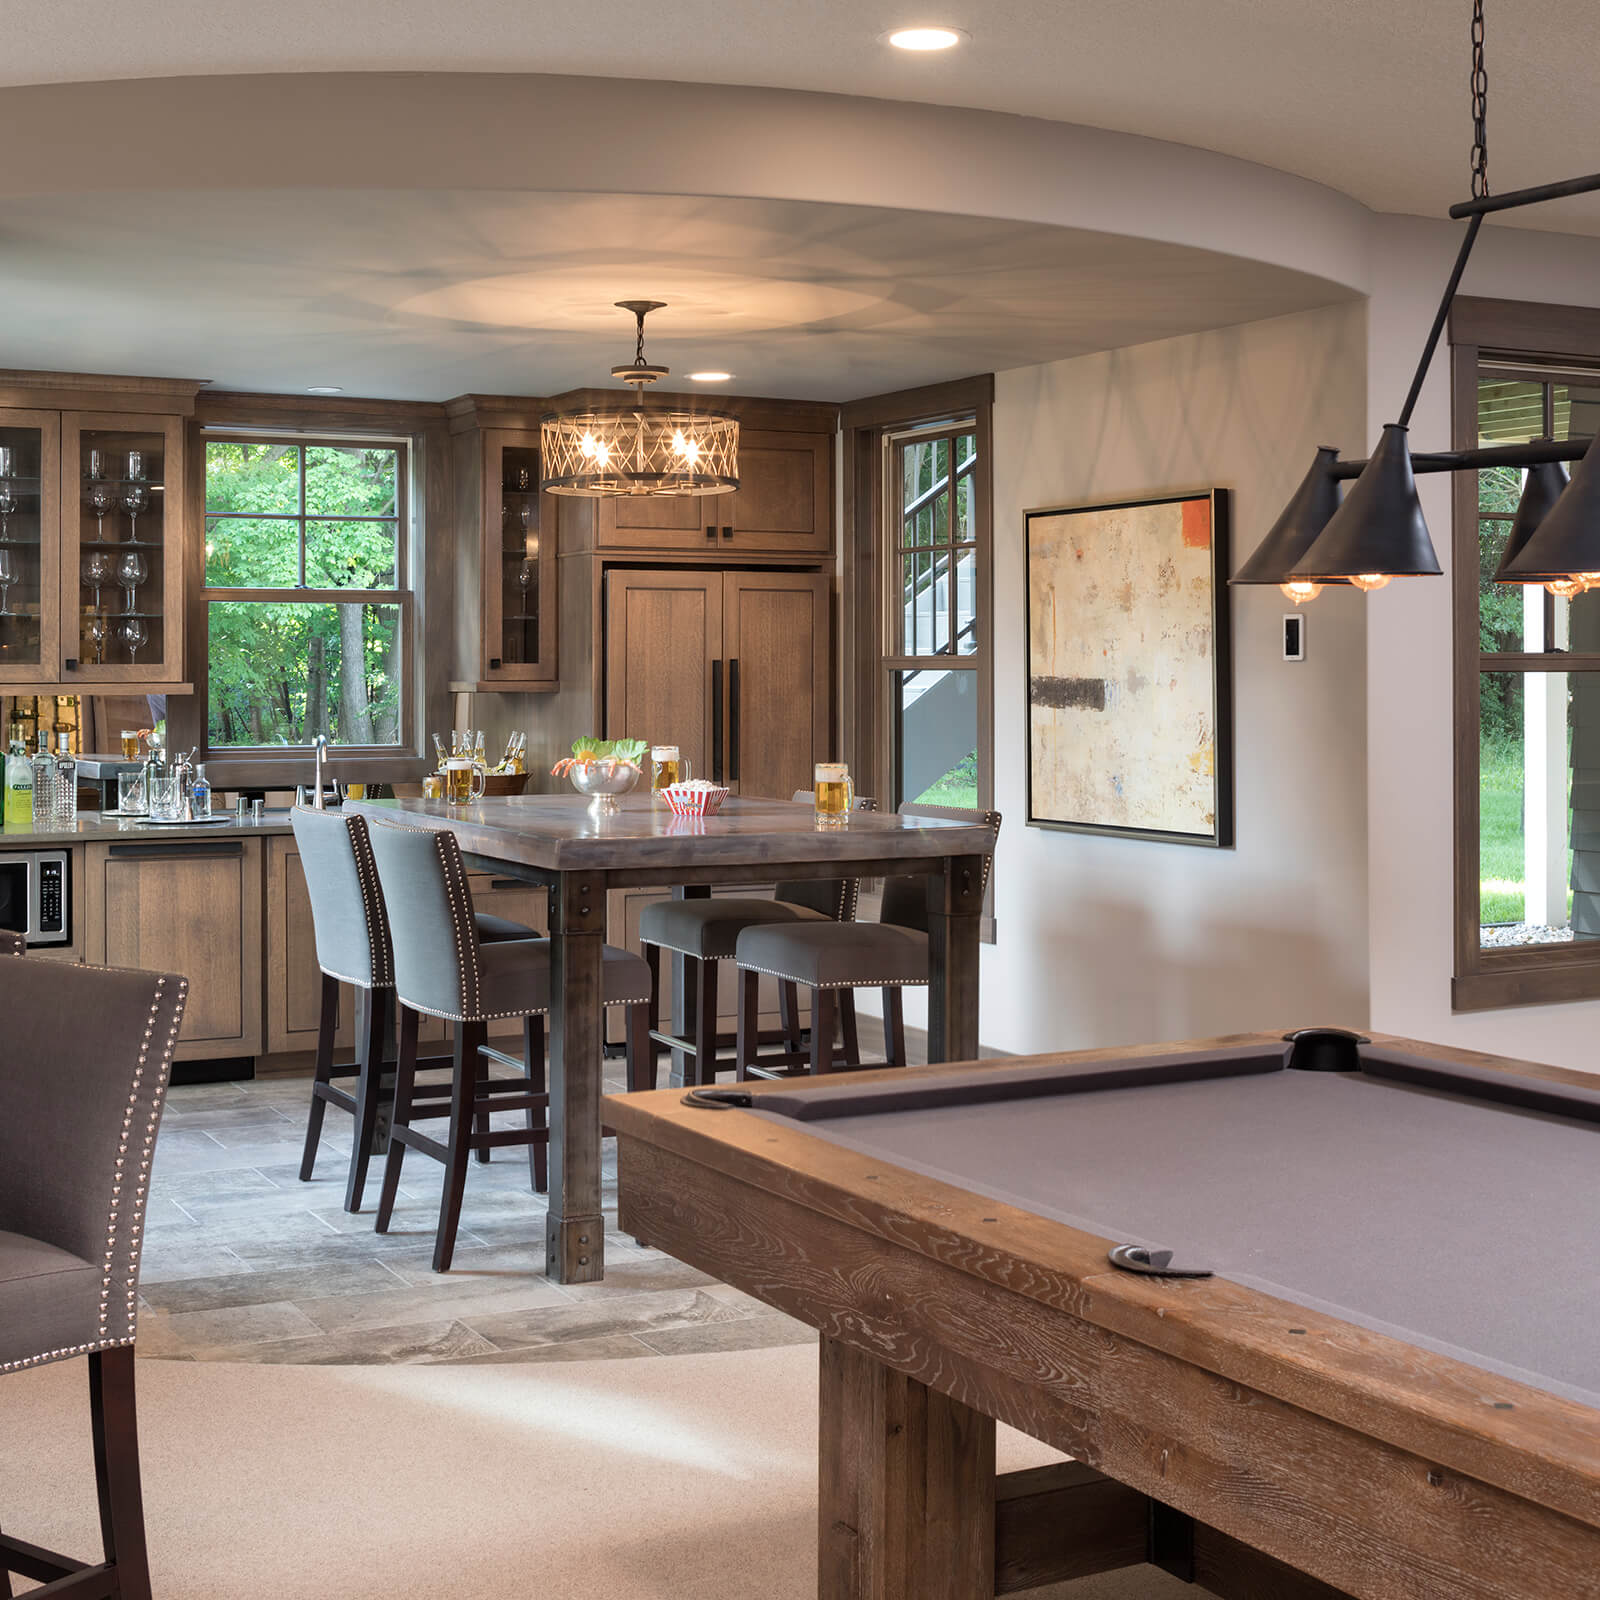 Large open concept kitchen with Marvin Elevate Double Hung Windows